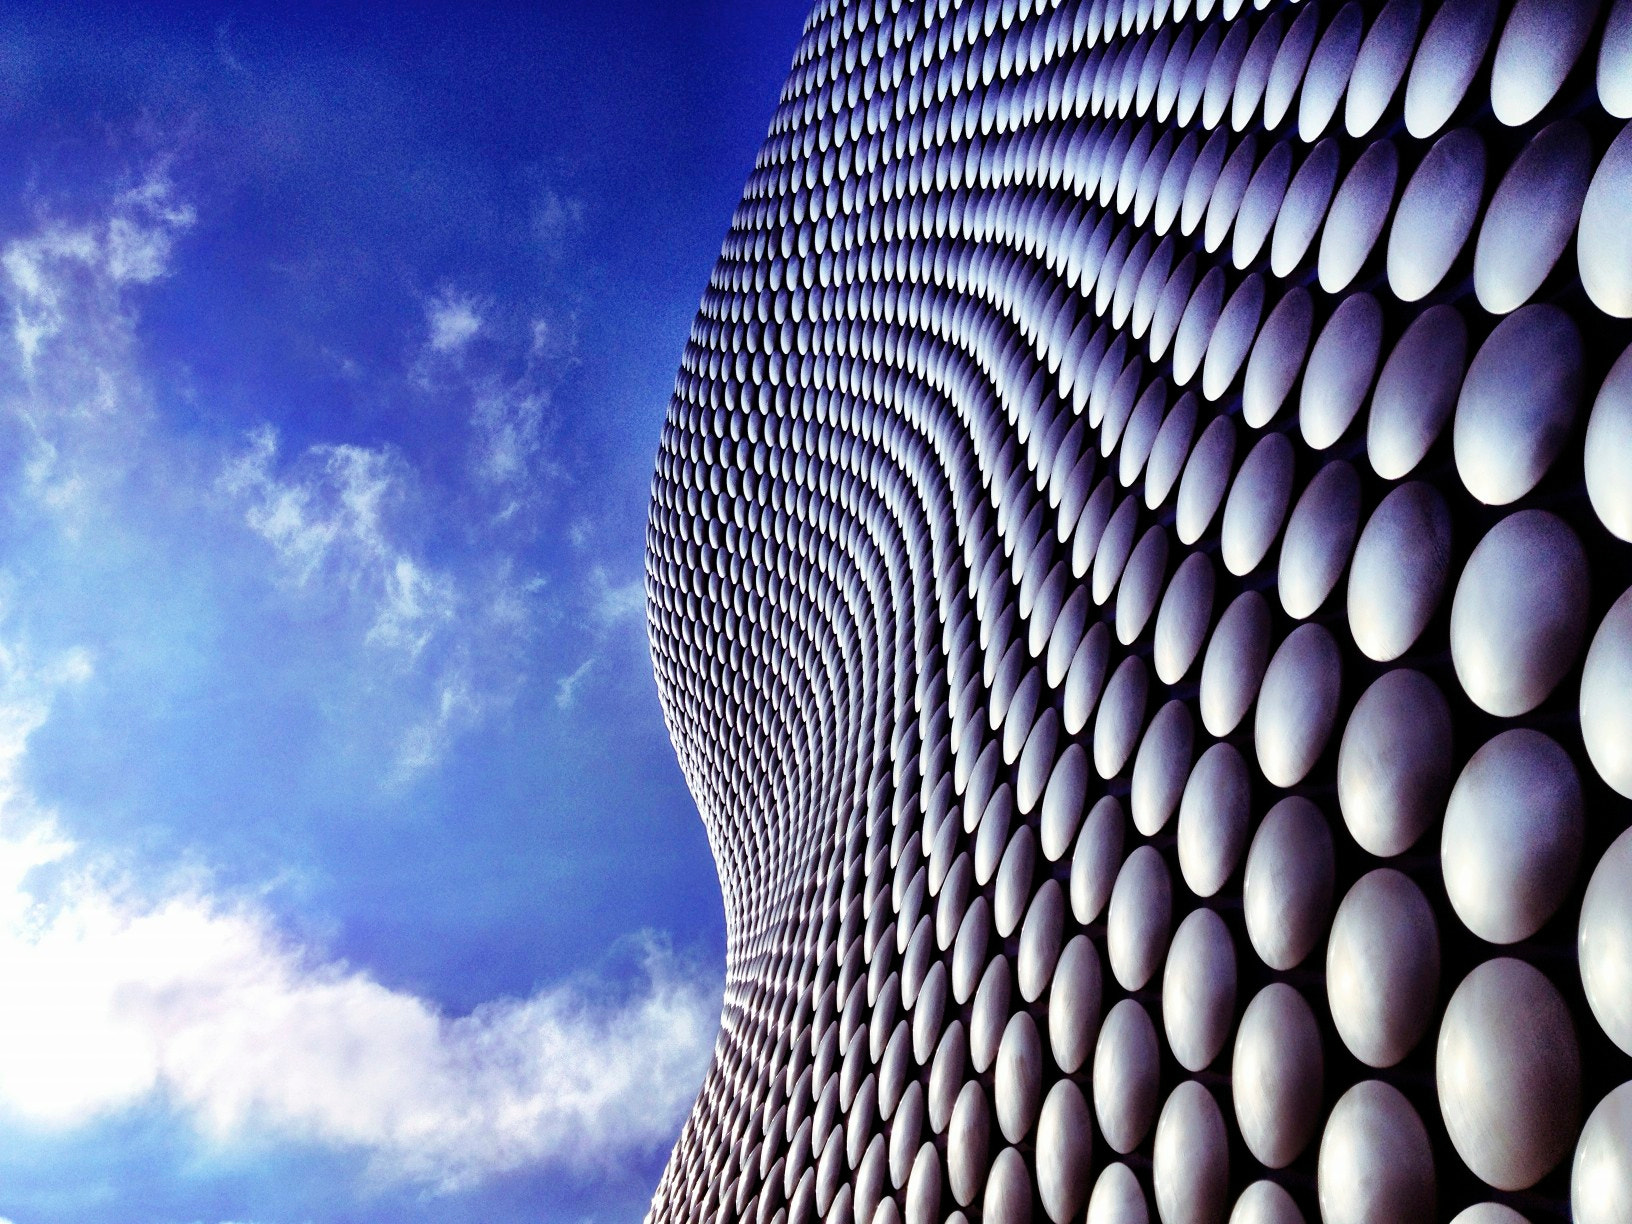 Photograph Curves, Spheres & Sky by Richard Wiggins on 500px